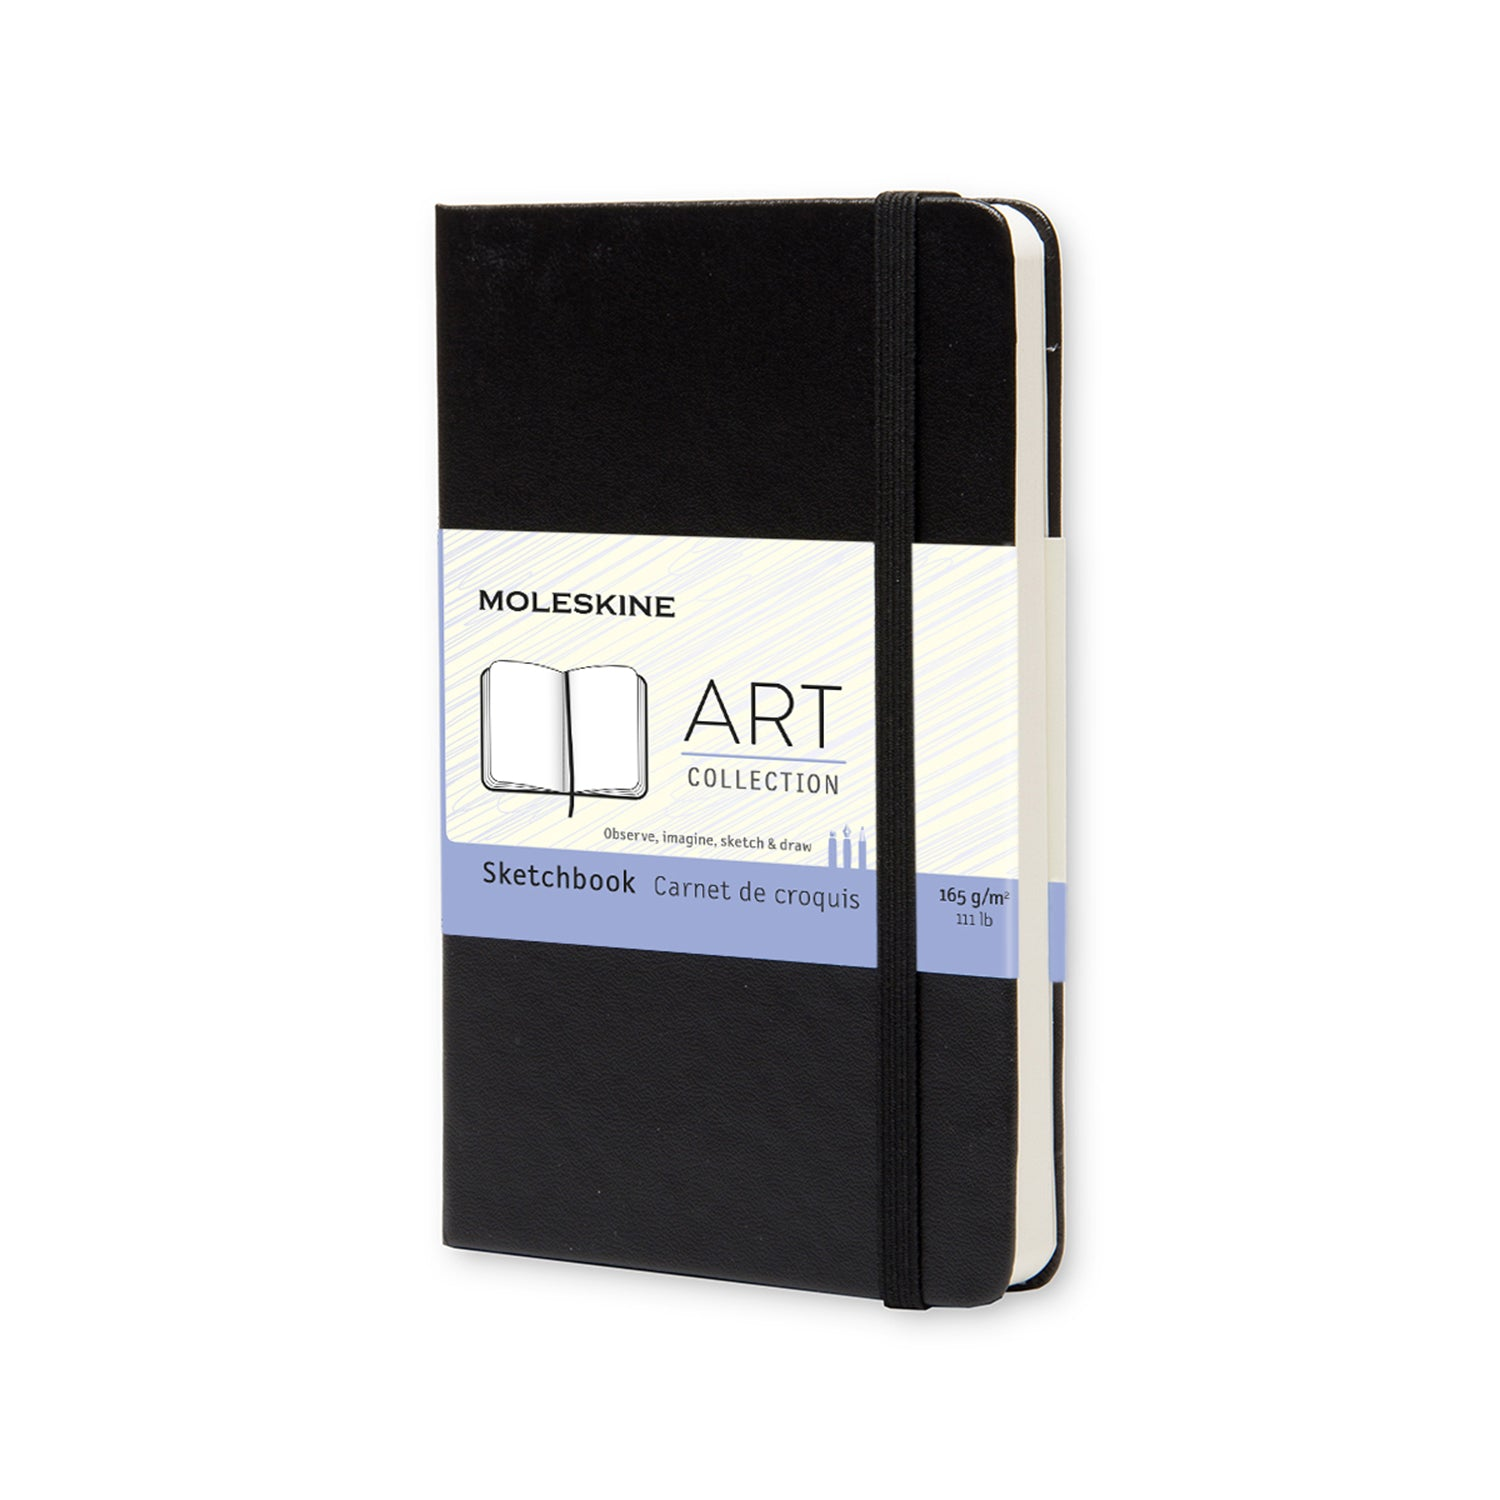 "Moleskine ART Collection Sketchbook 3 1/2"" x 5 1/2 """